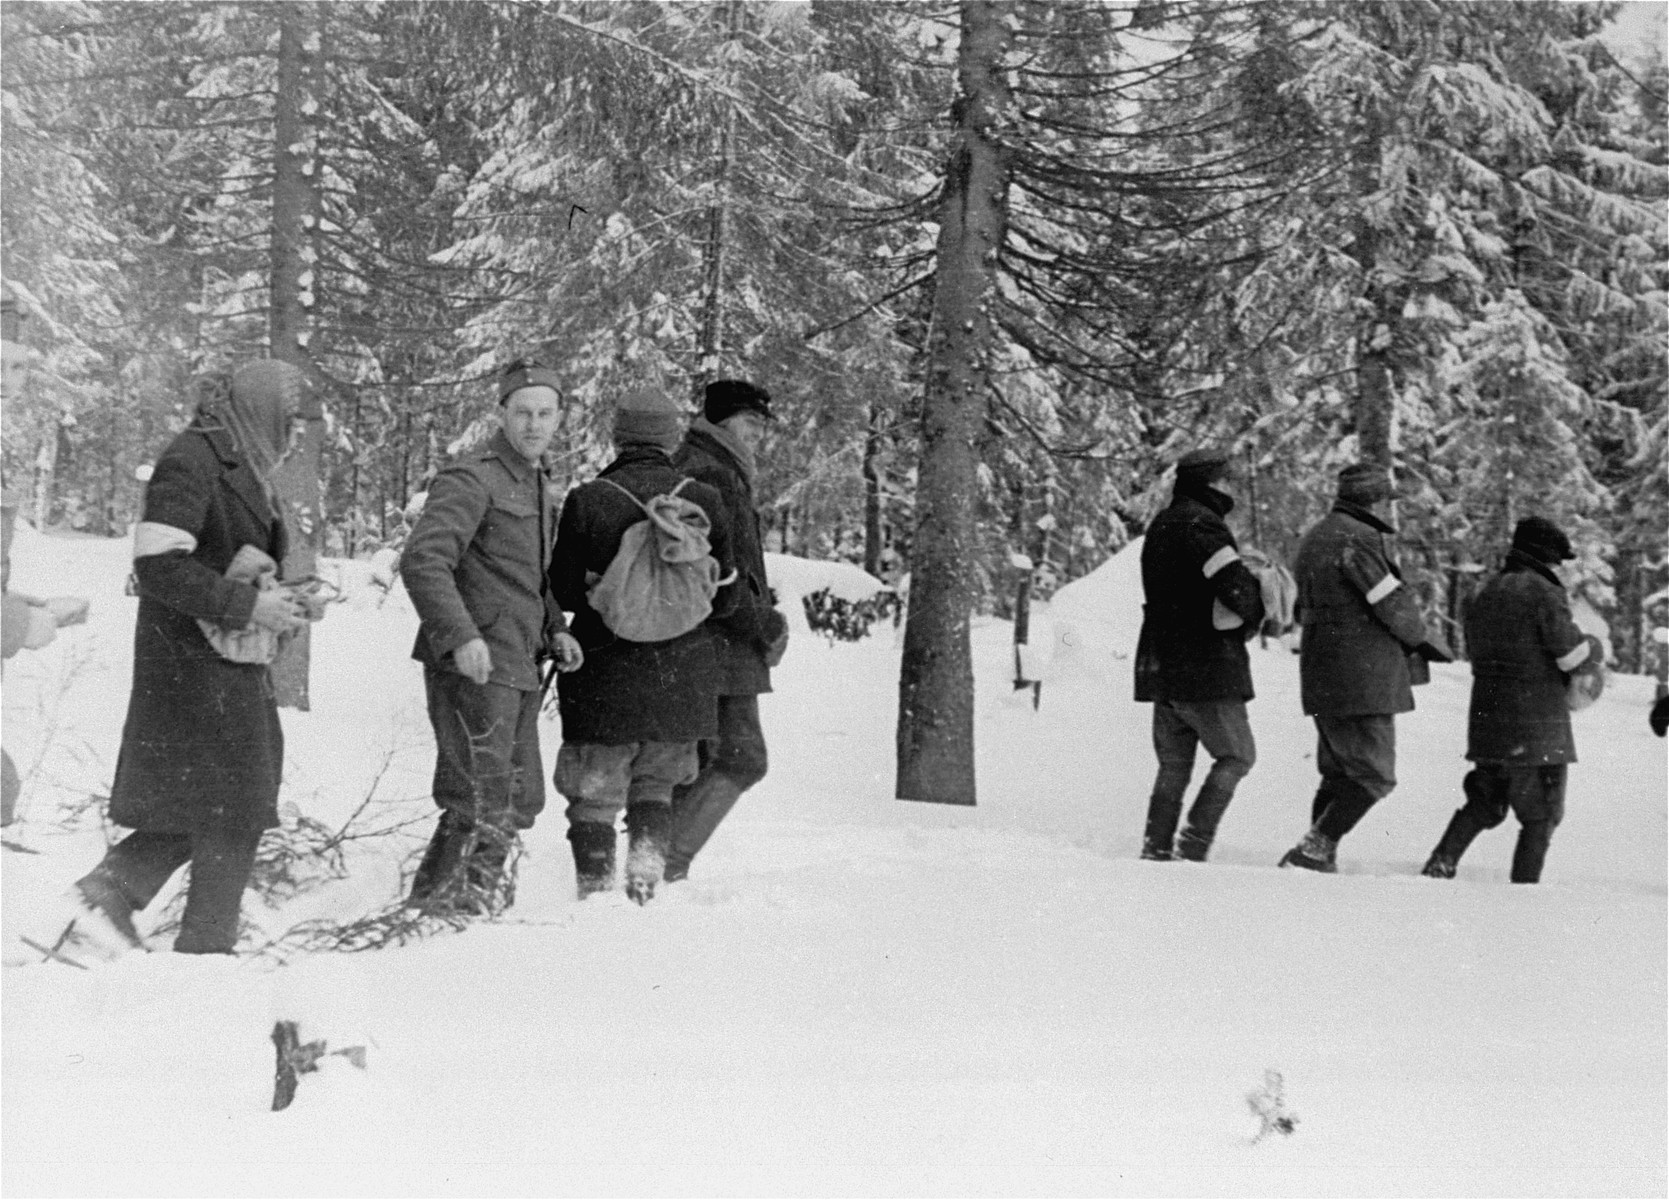 Jewish conscripts in Company 108/57 of the Hungarian Labor Service on a wood collecting expedition.